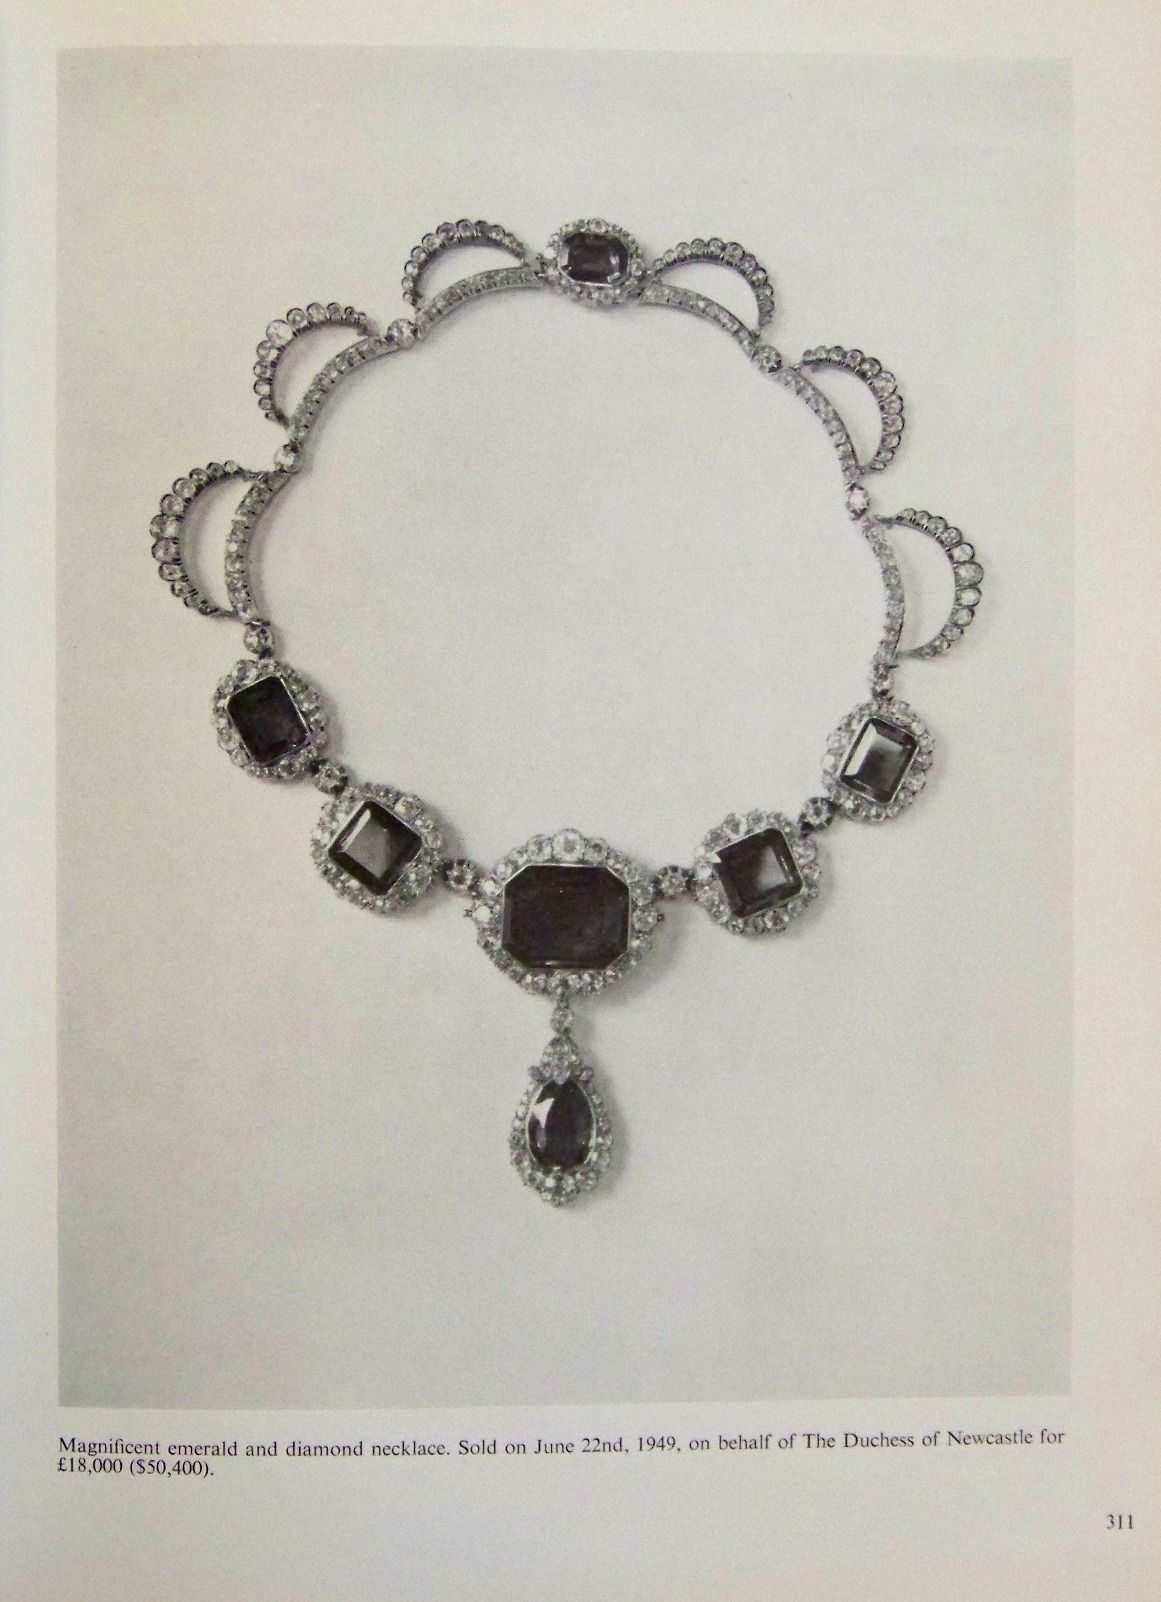 The lovely diamond and emerald necklace worn by the Duchess of Newcastle in the previous pin, was sold on 22 June 1949 for £18,000.